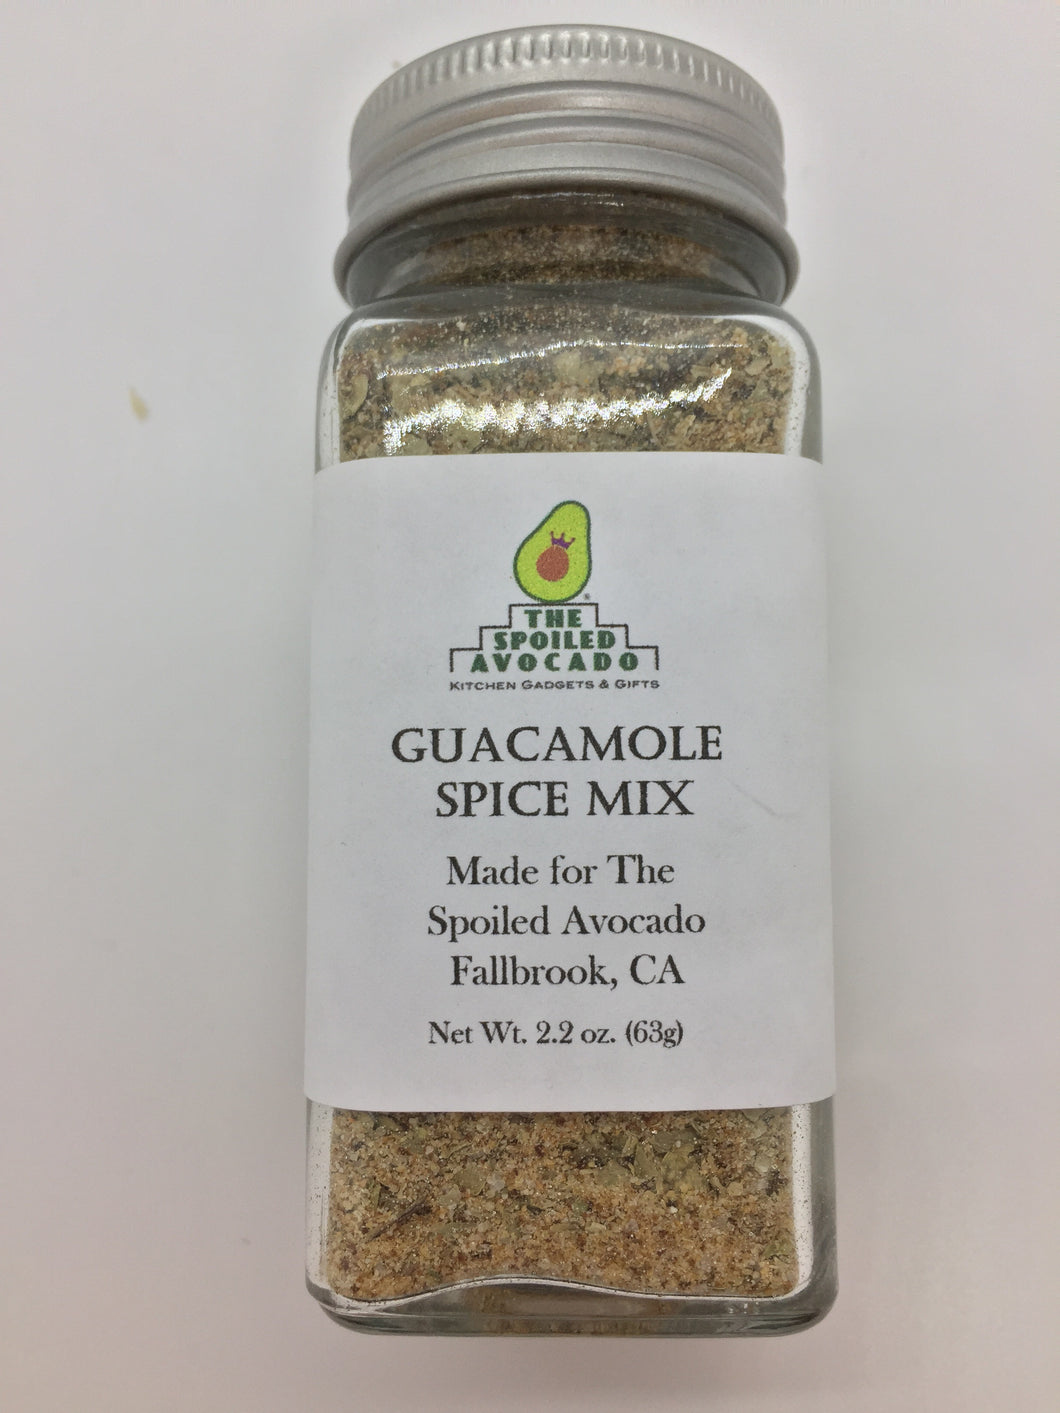 The Spoiled Avocado Guacamole Spice Mix 2.2 oz (63g)